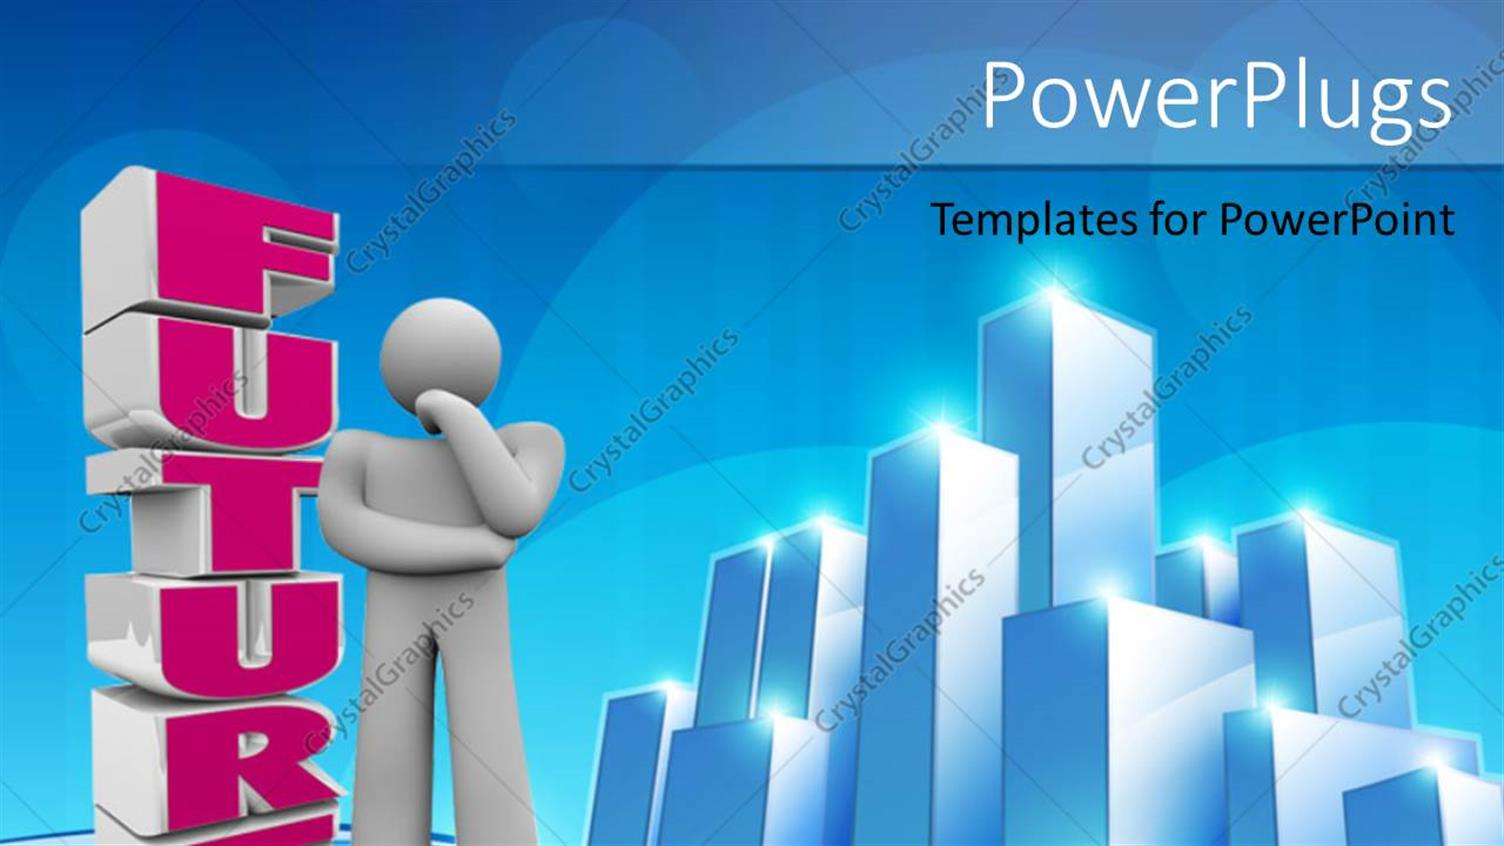 PowerPoint Template Displaying a Number of Skyscrapers with Bluish Background